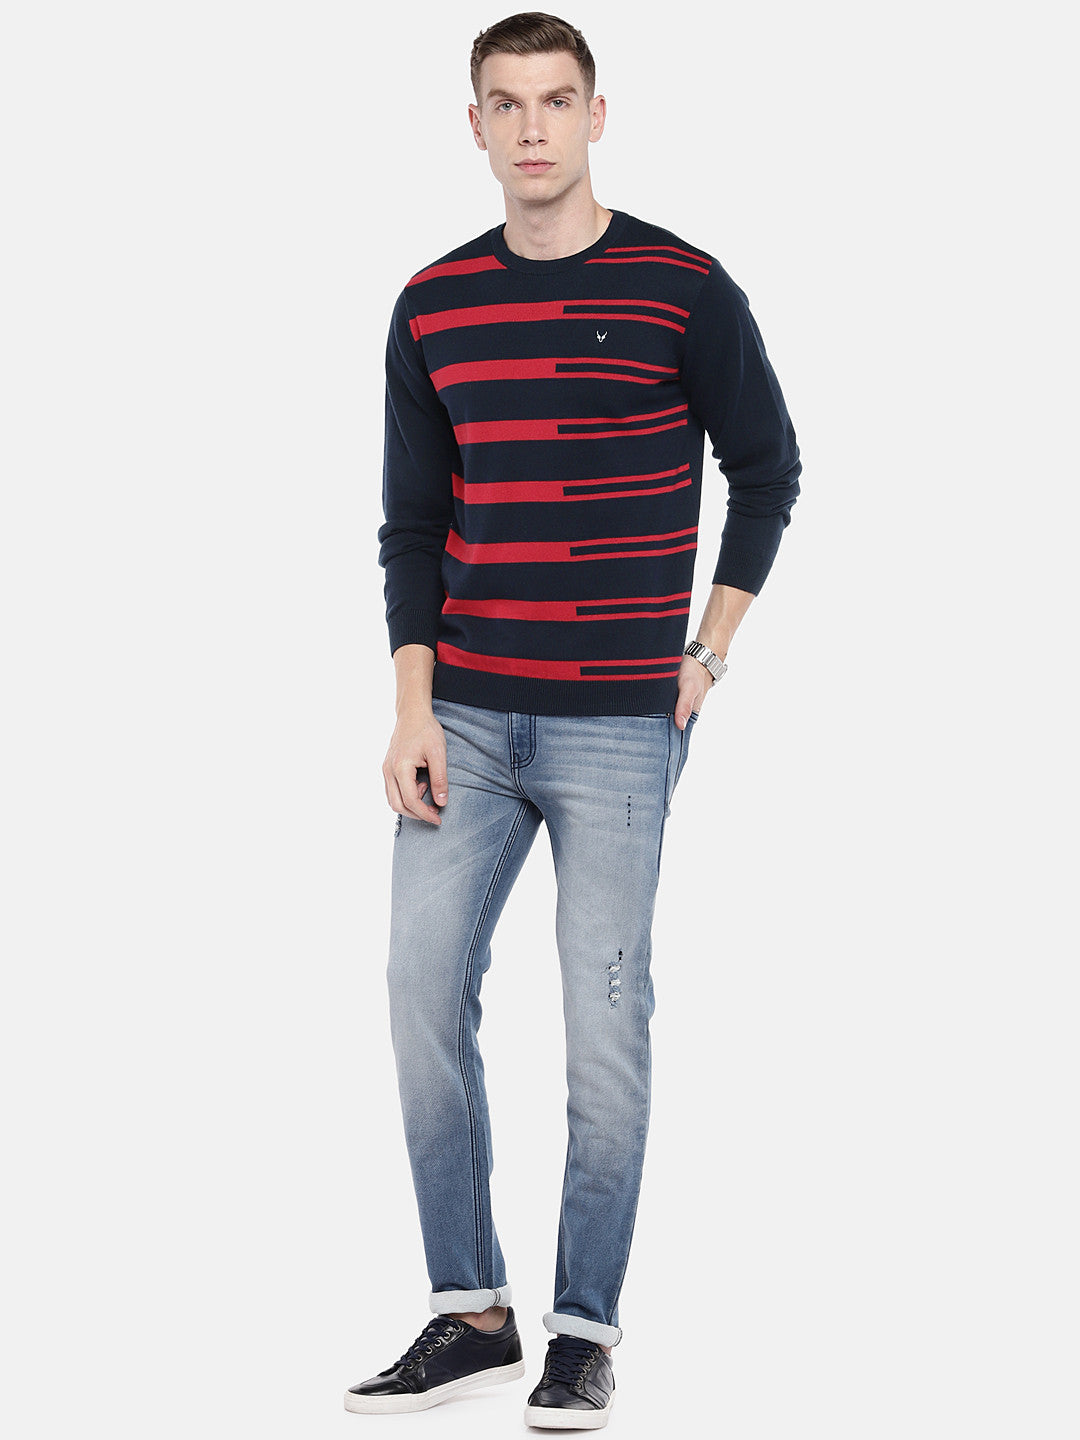 Navy Blue & Red Striped Pullover Sweater-4